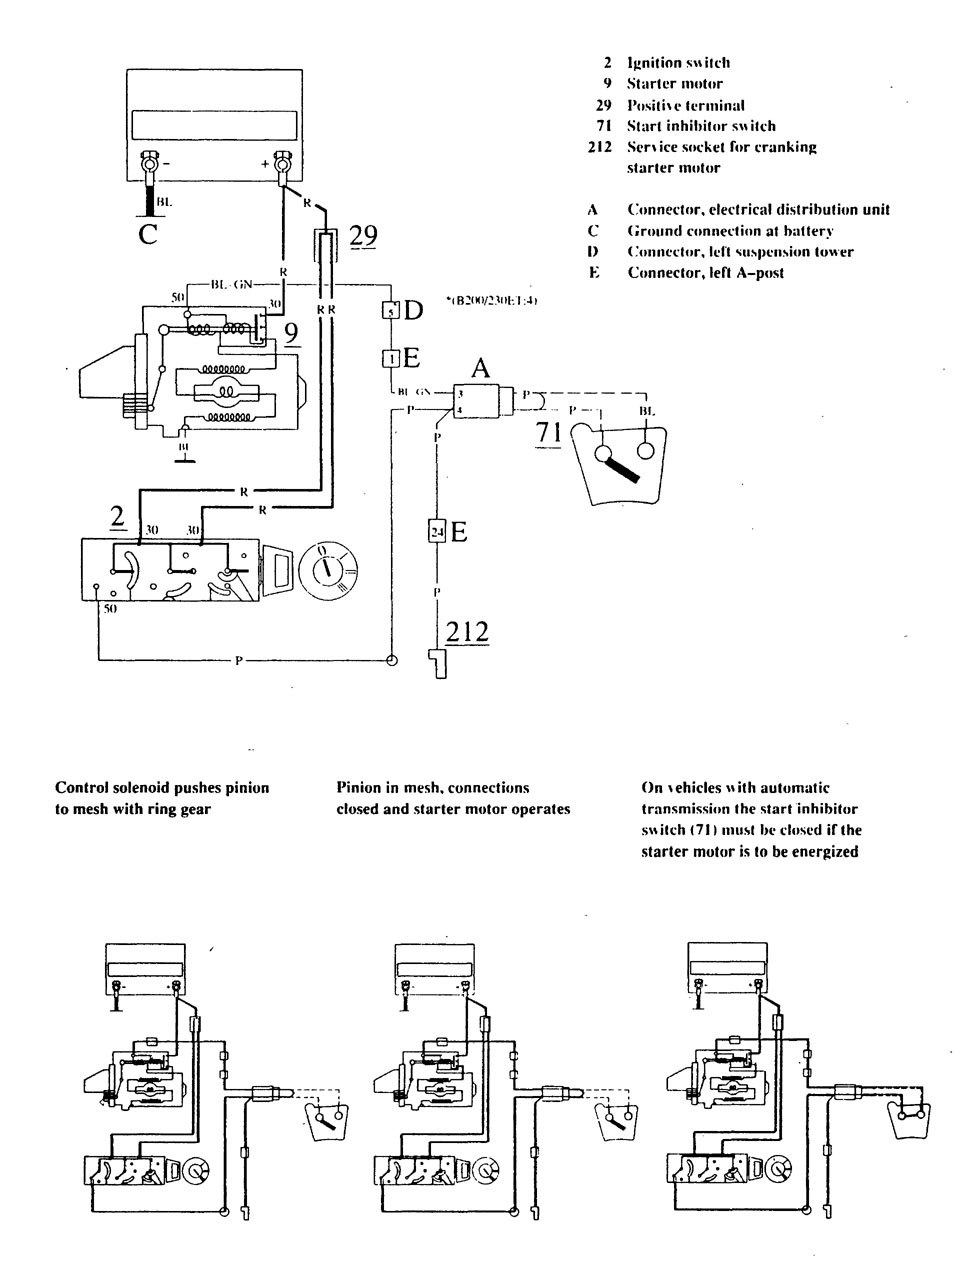 1989 Volvo 240 Battery Wiring Diagrams Real Diagram Gl Fuse Box 740 1991 Starting Carknowledge Rh Info 1990 Alternator